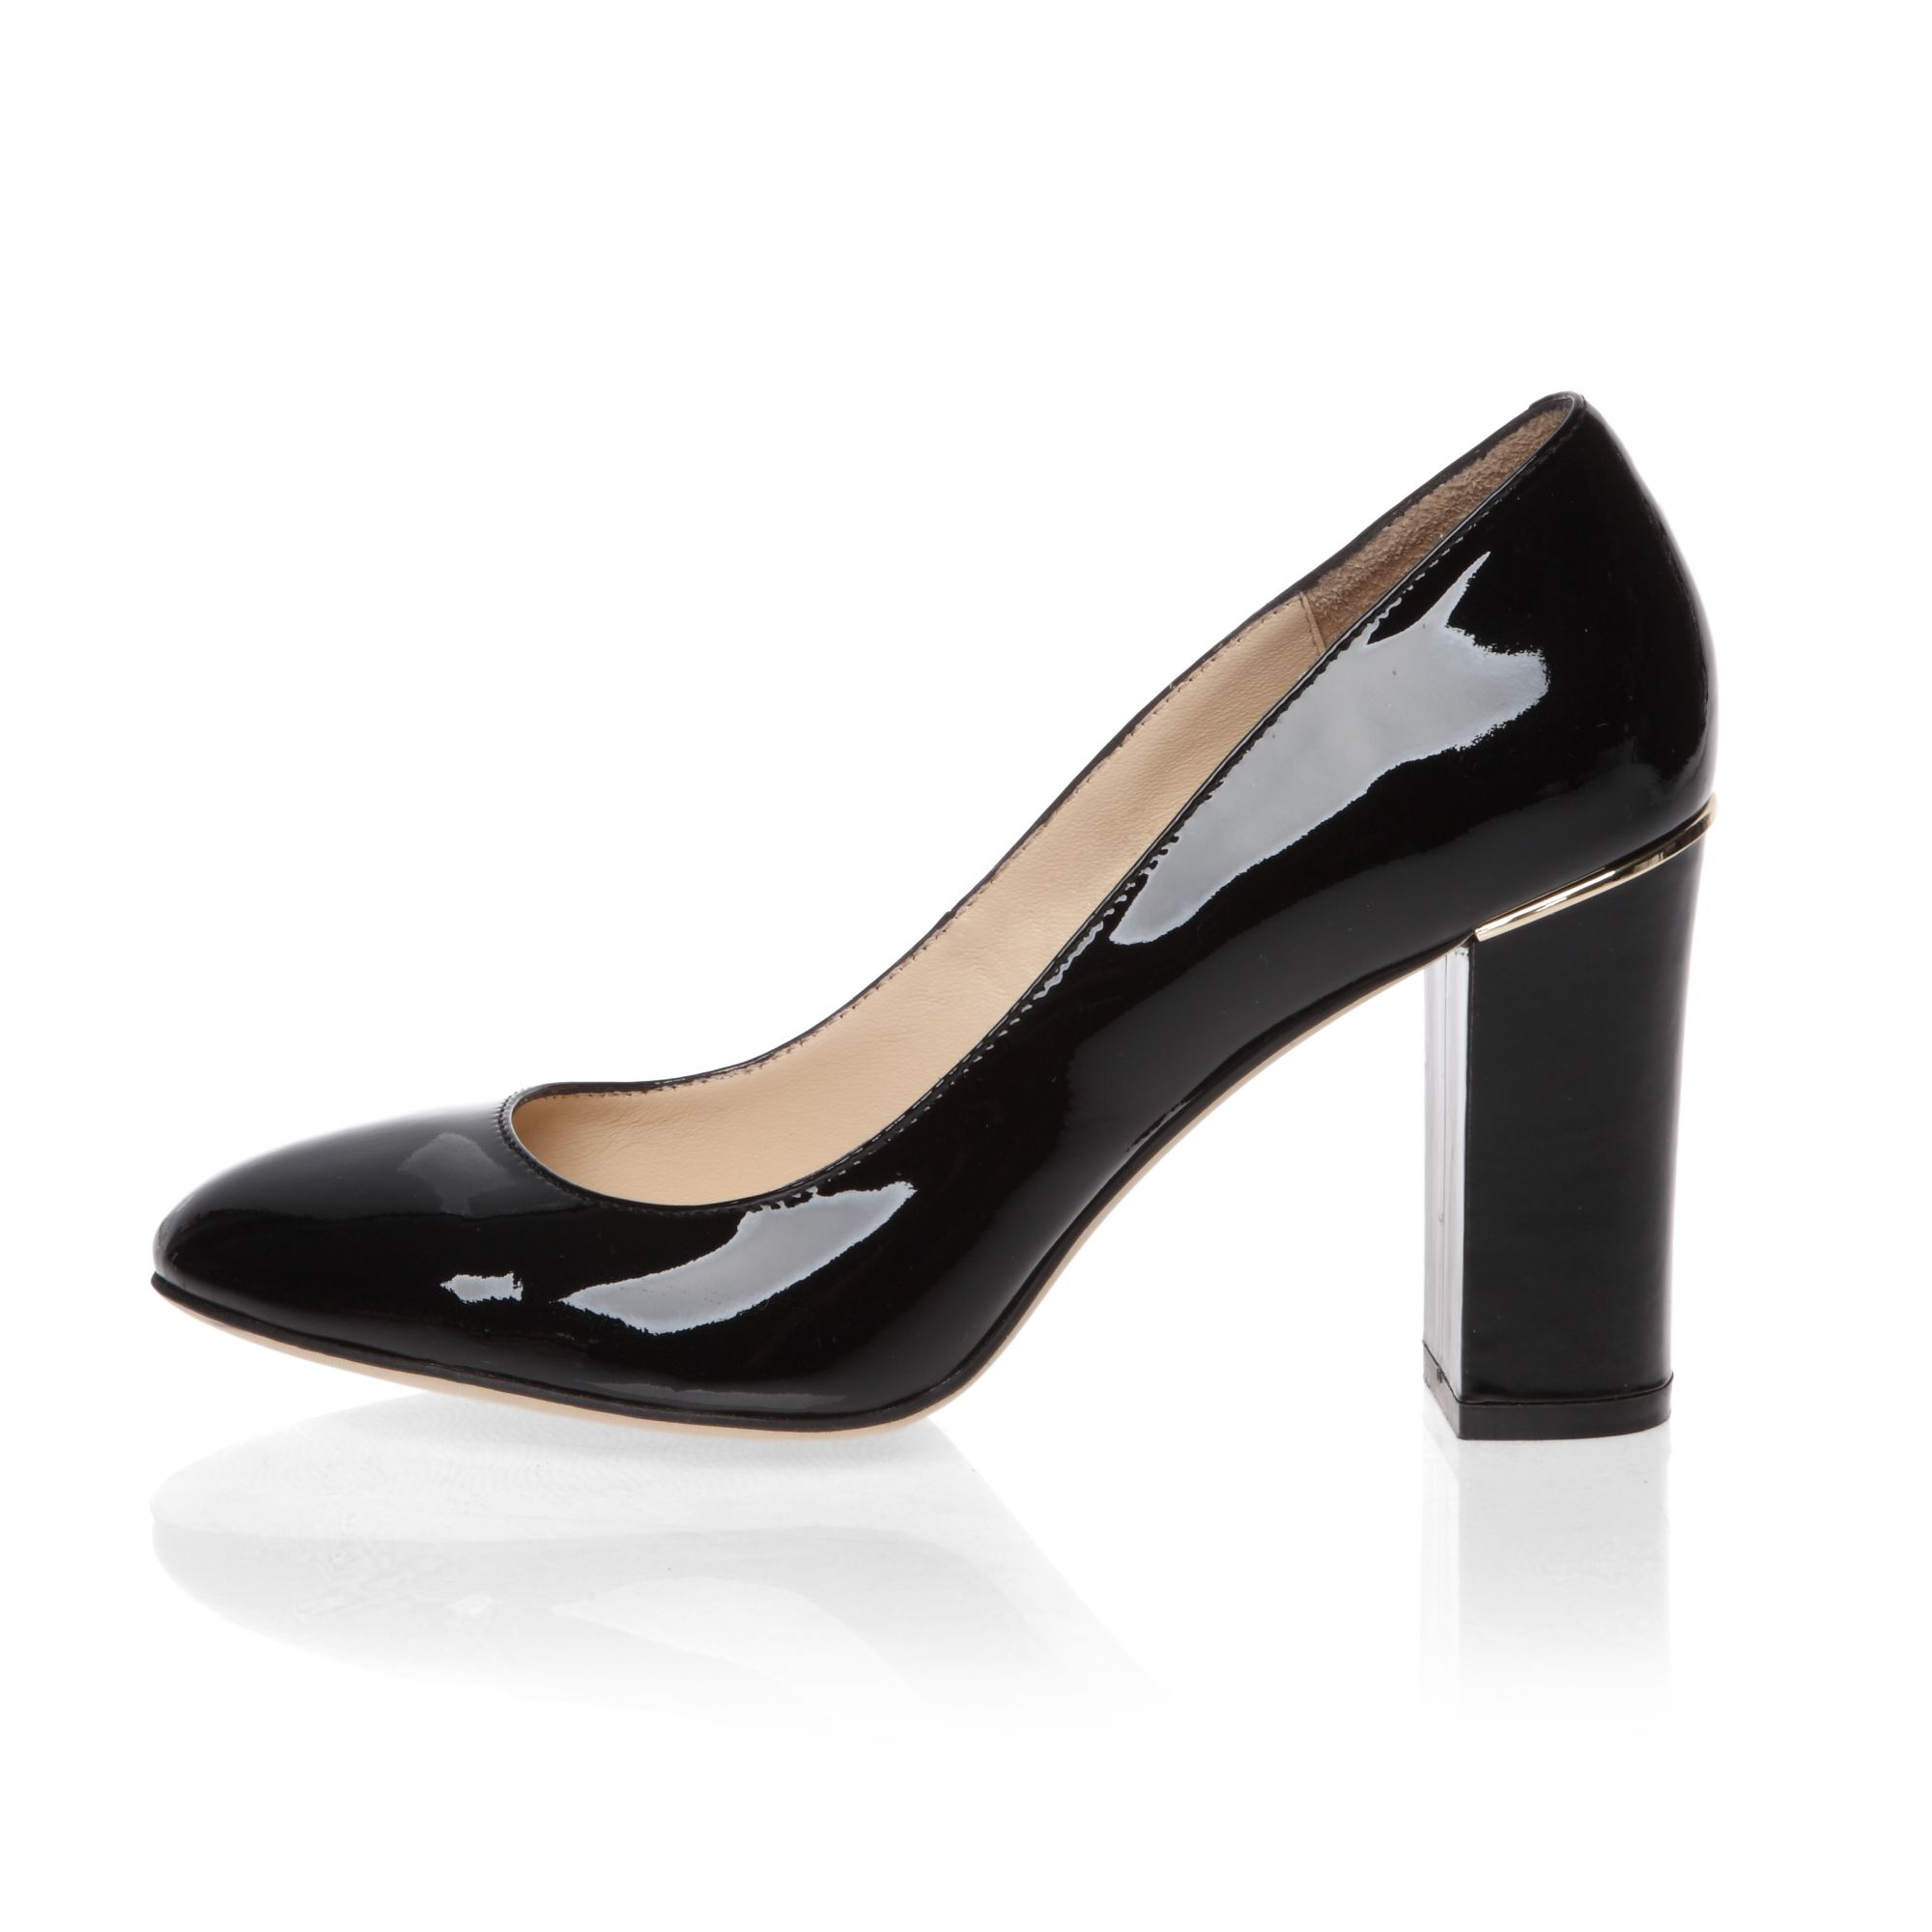 Classic mid heeled patent court shoes